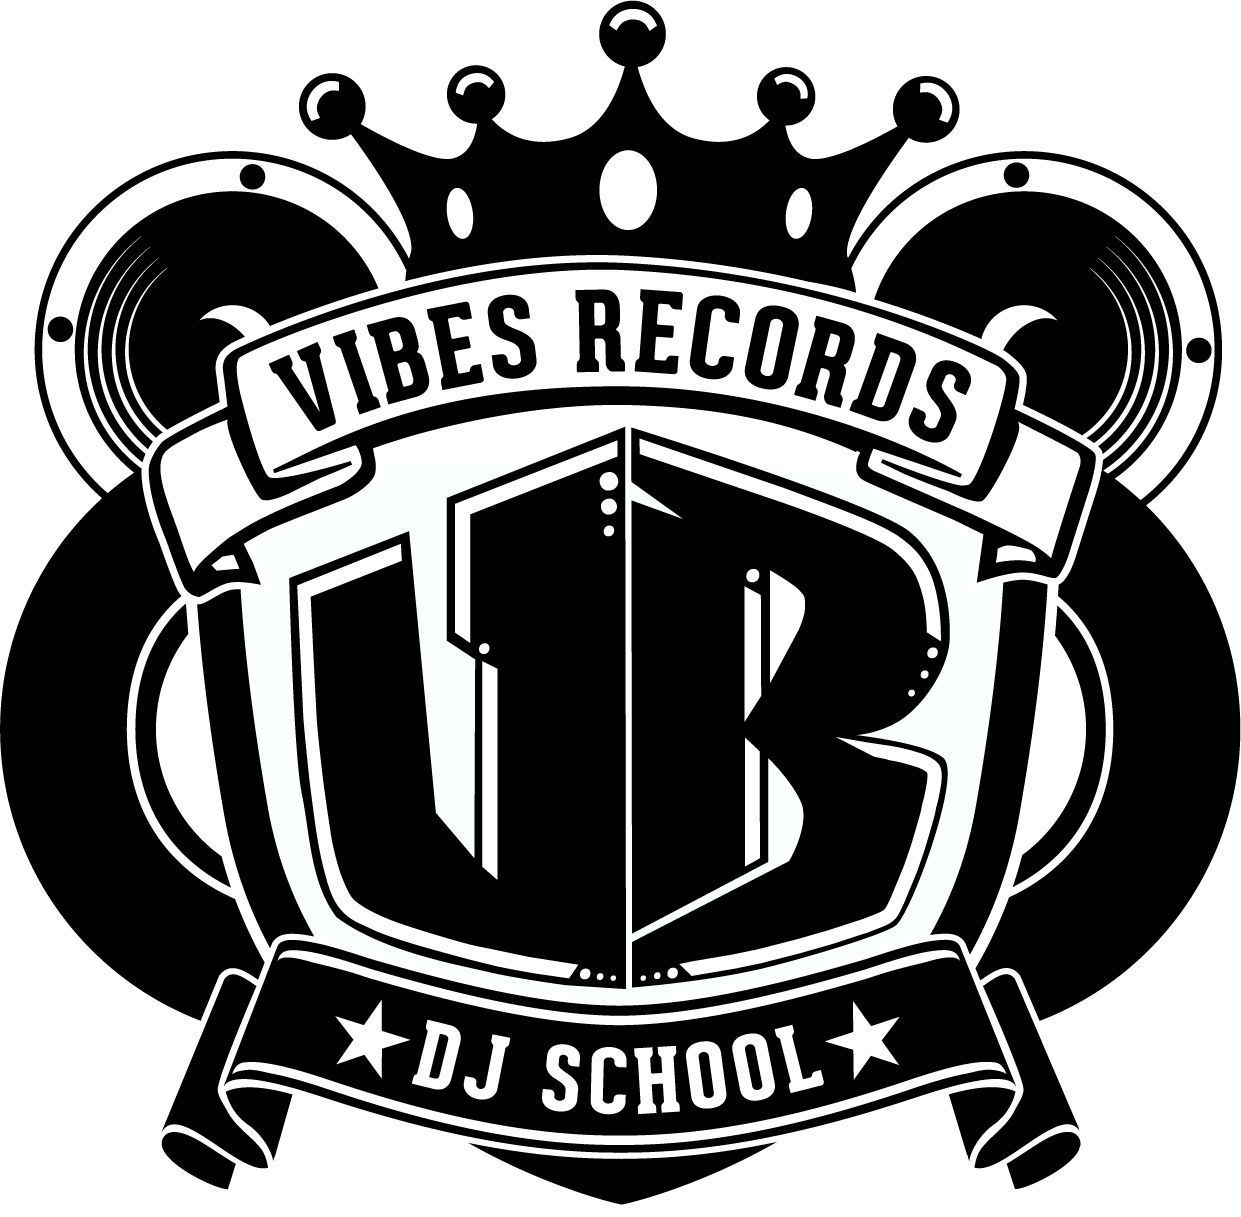 VIBESRECORDS